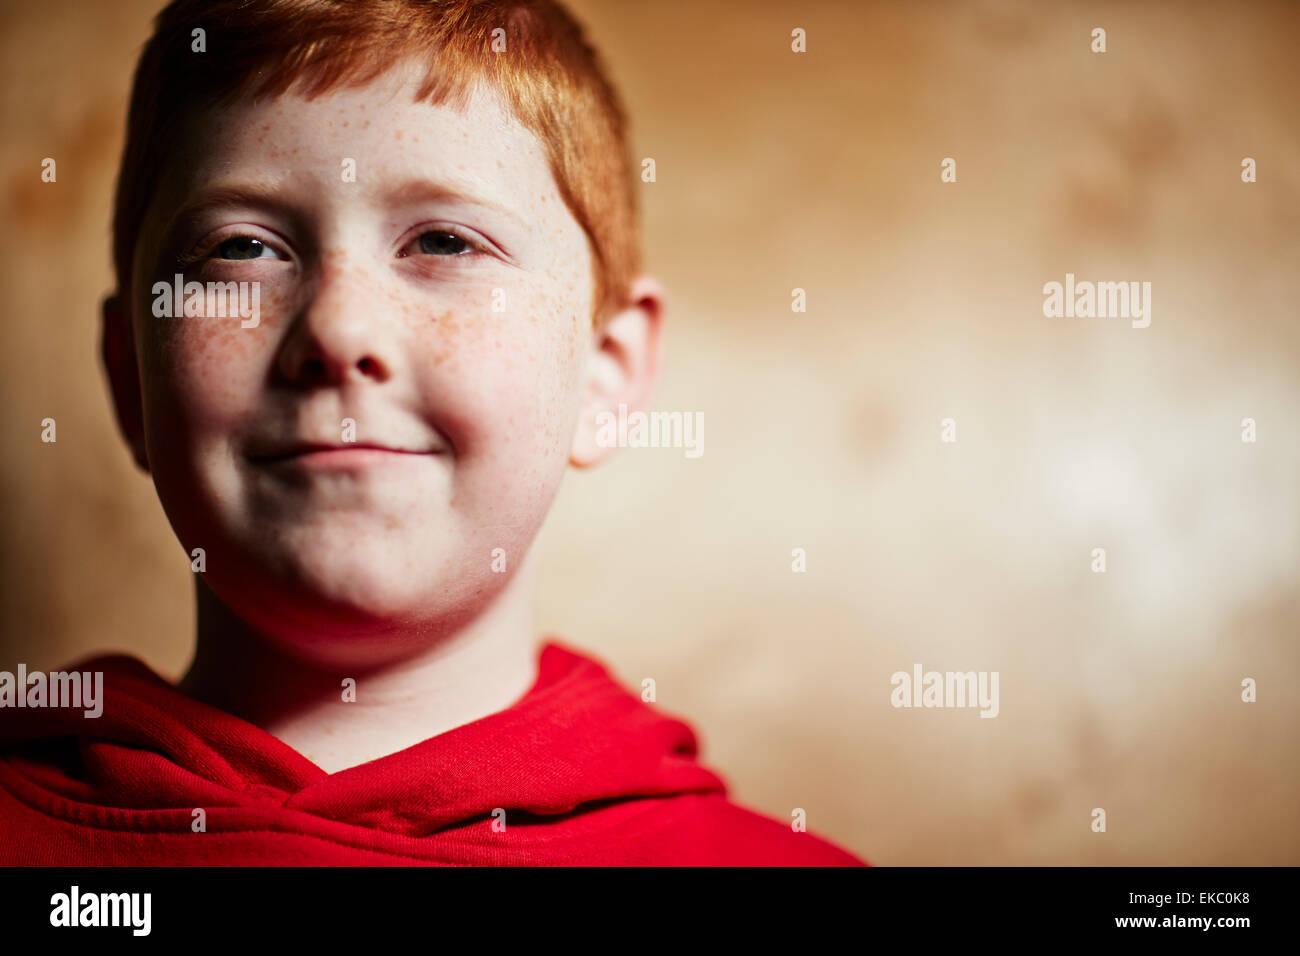 Boy with red hair, smiling - Stock Image